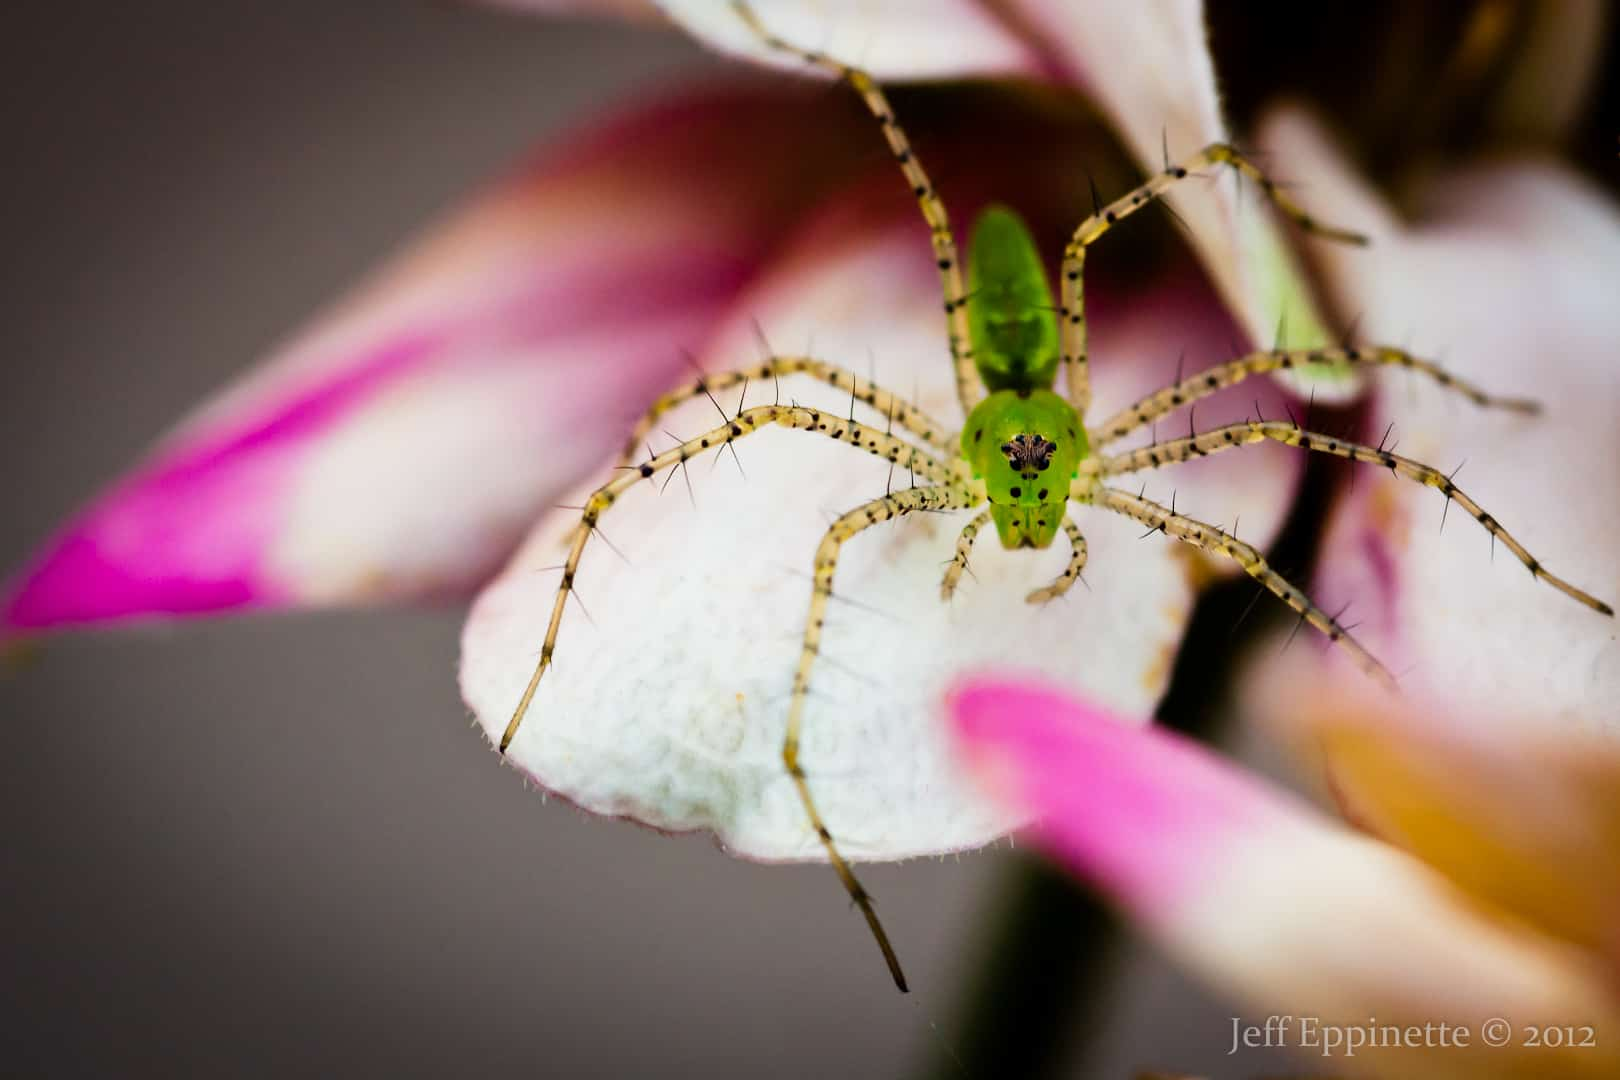 Green Lynx Spider with flower green